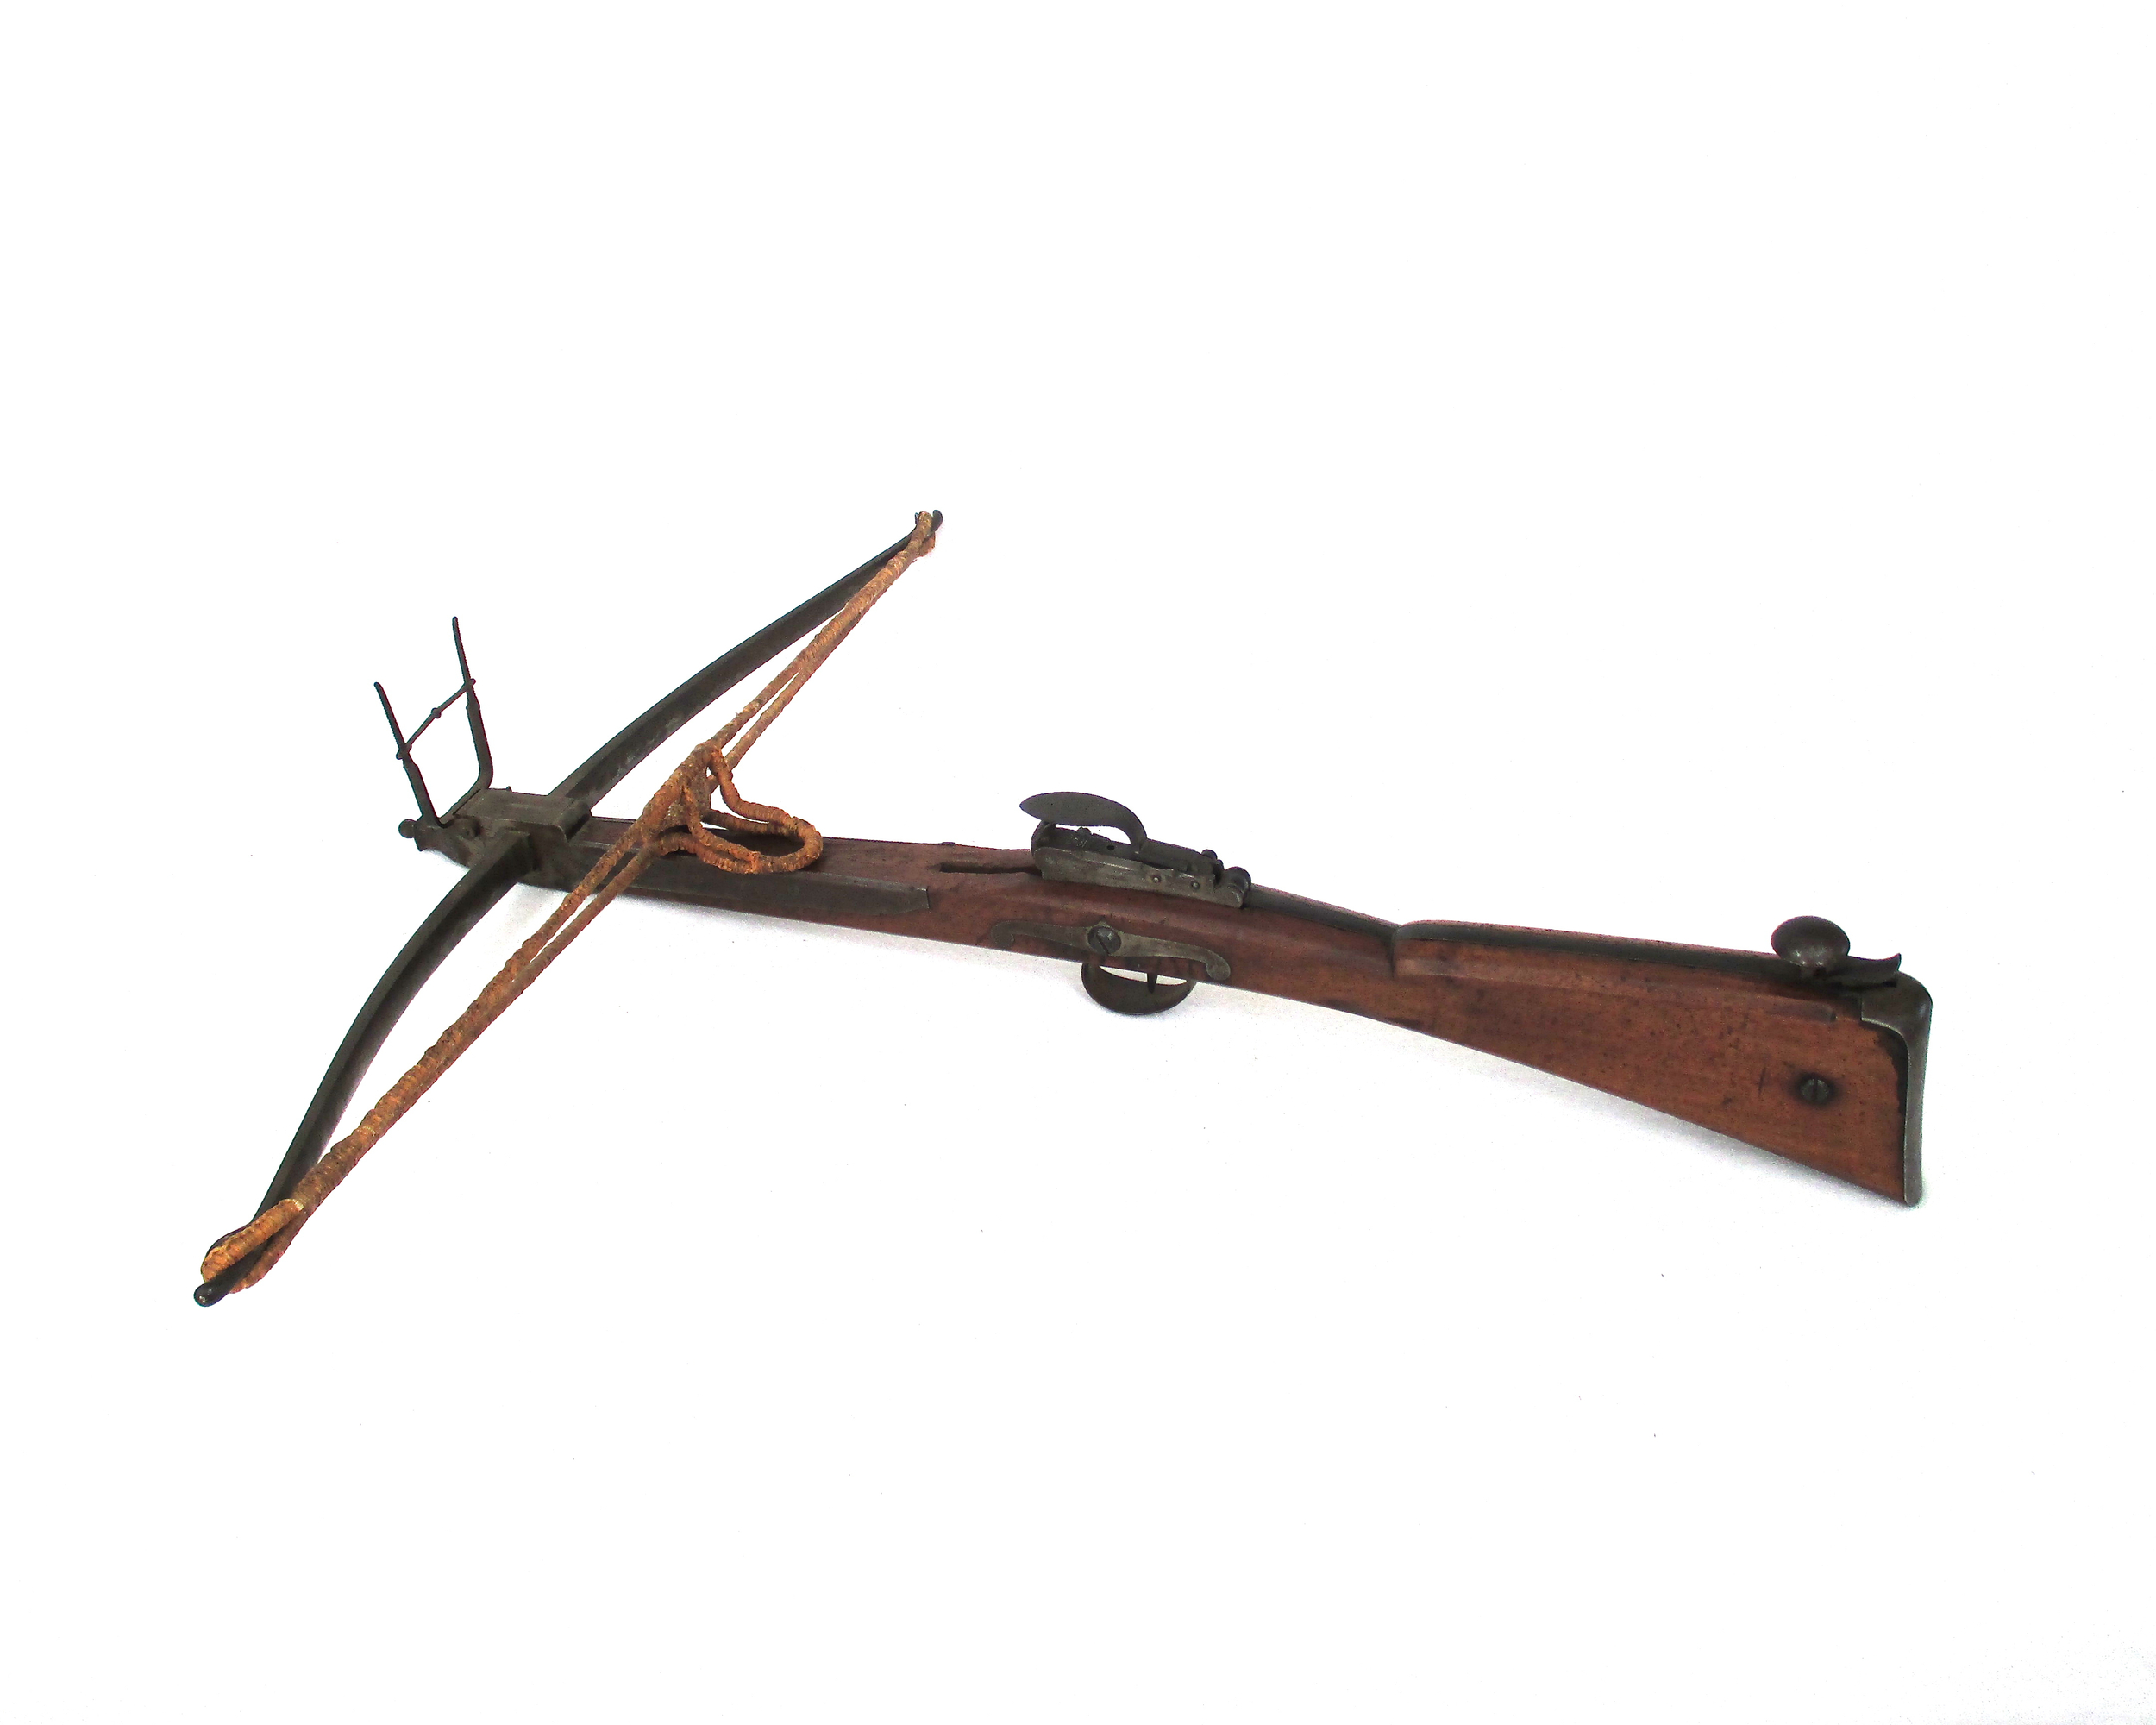 english-stonebow-crossbow-pellet-weapon-barker-gary-friedland-antique-arms-armor.jpg